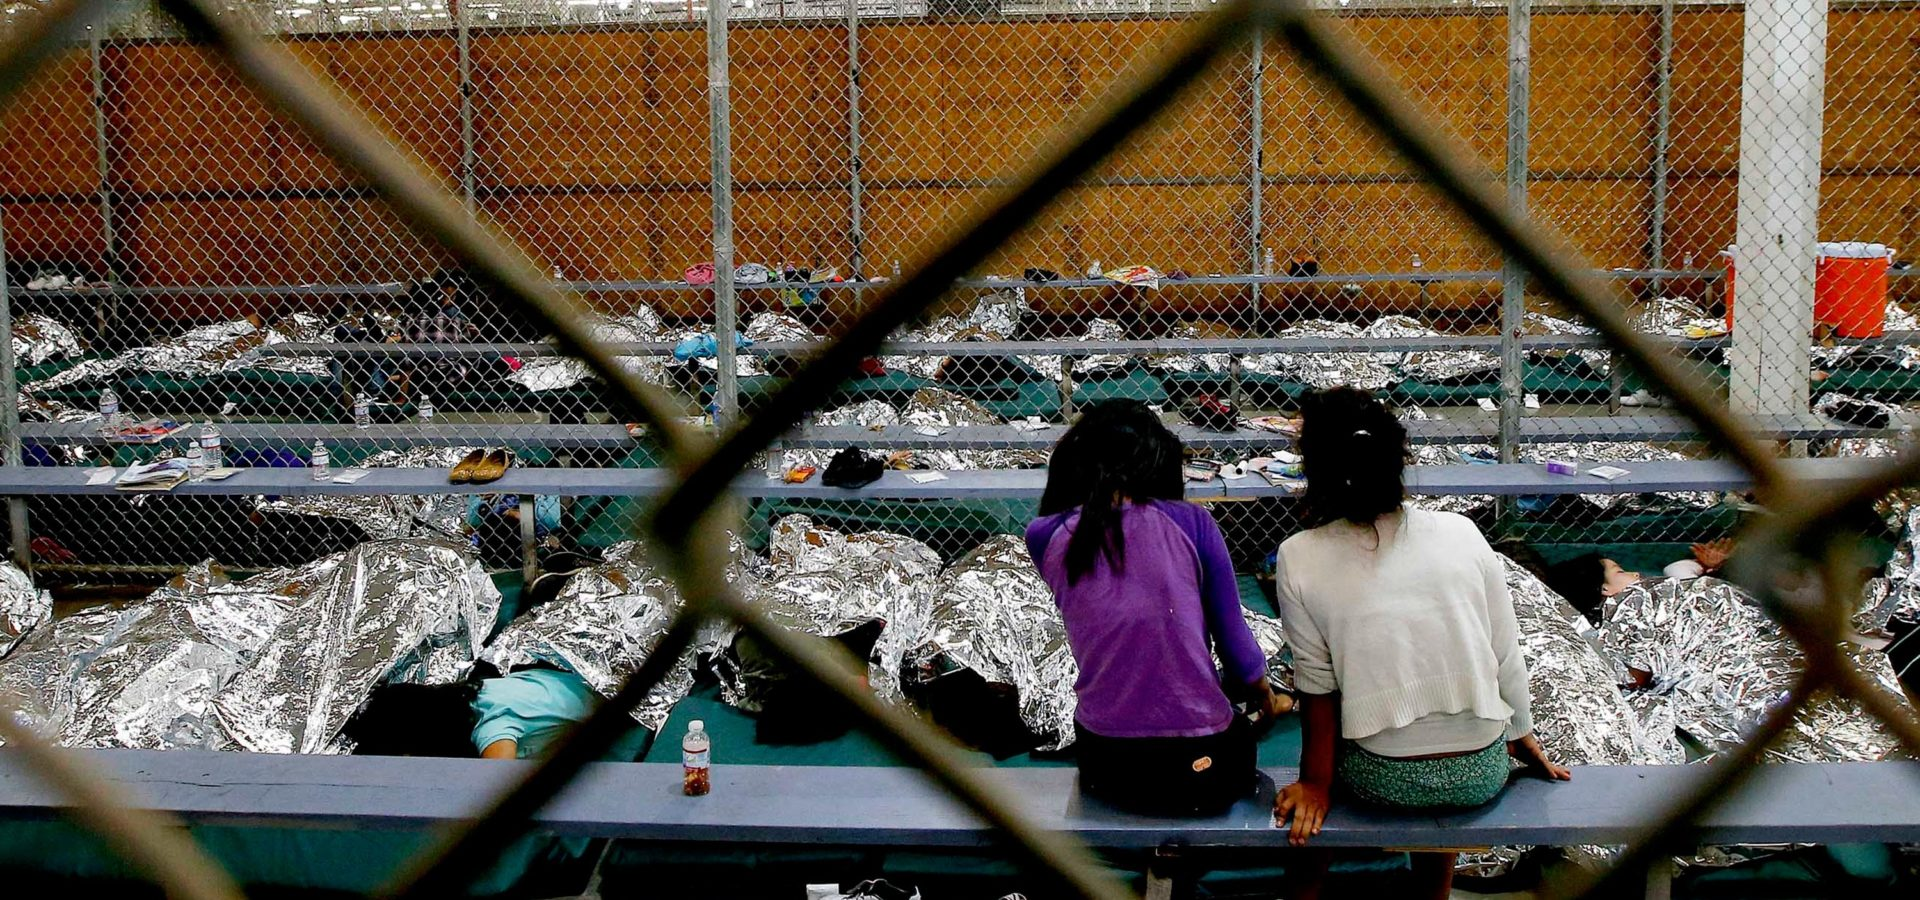 A holding area for mostly Central American immigrant children at the U.S. Customs and Border Protection Placement Center in Nogales, Ariz. July 17, 2014. Ross D. Franklin | AP